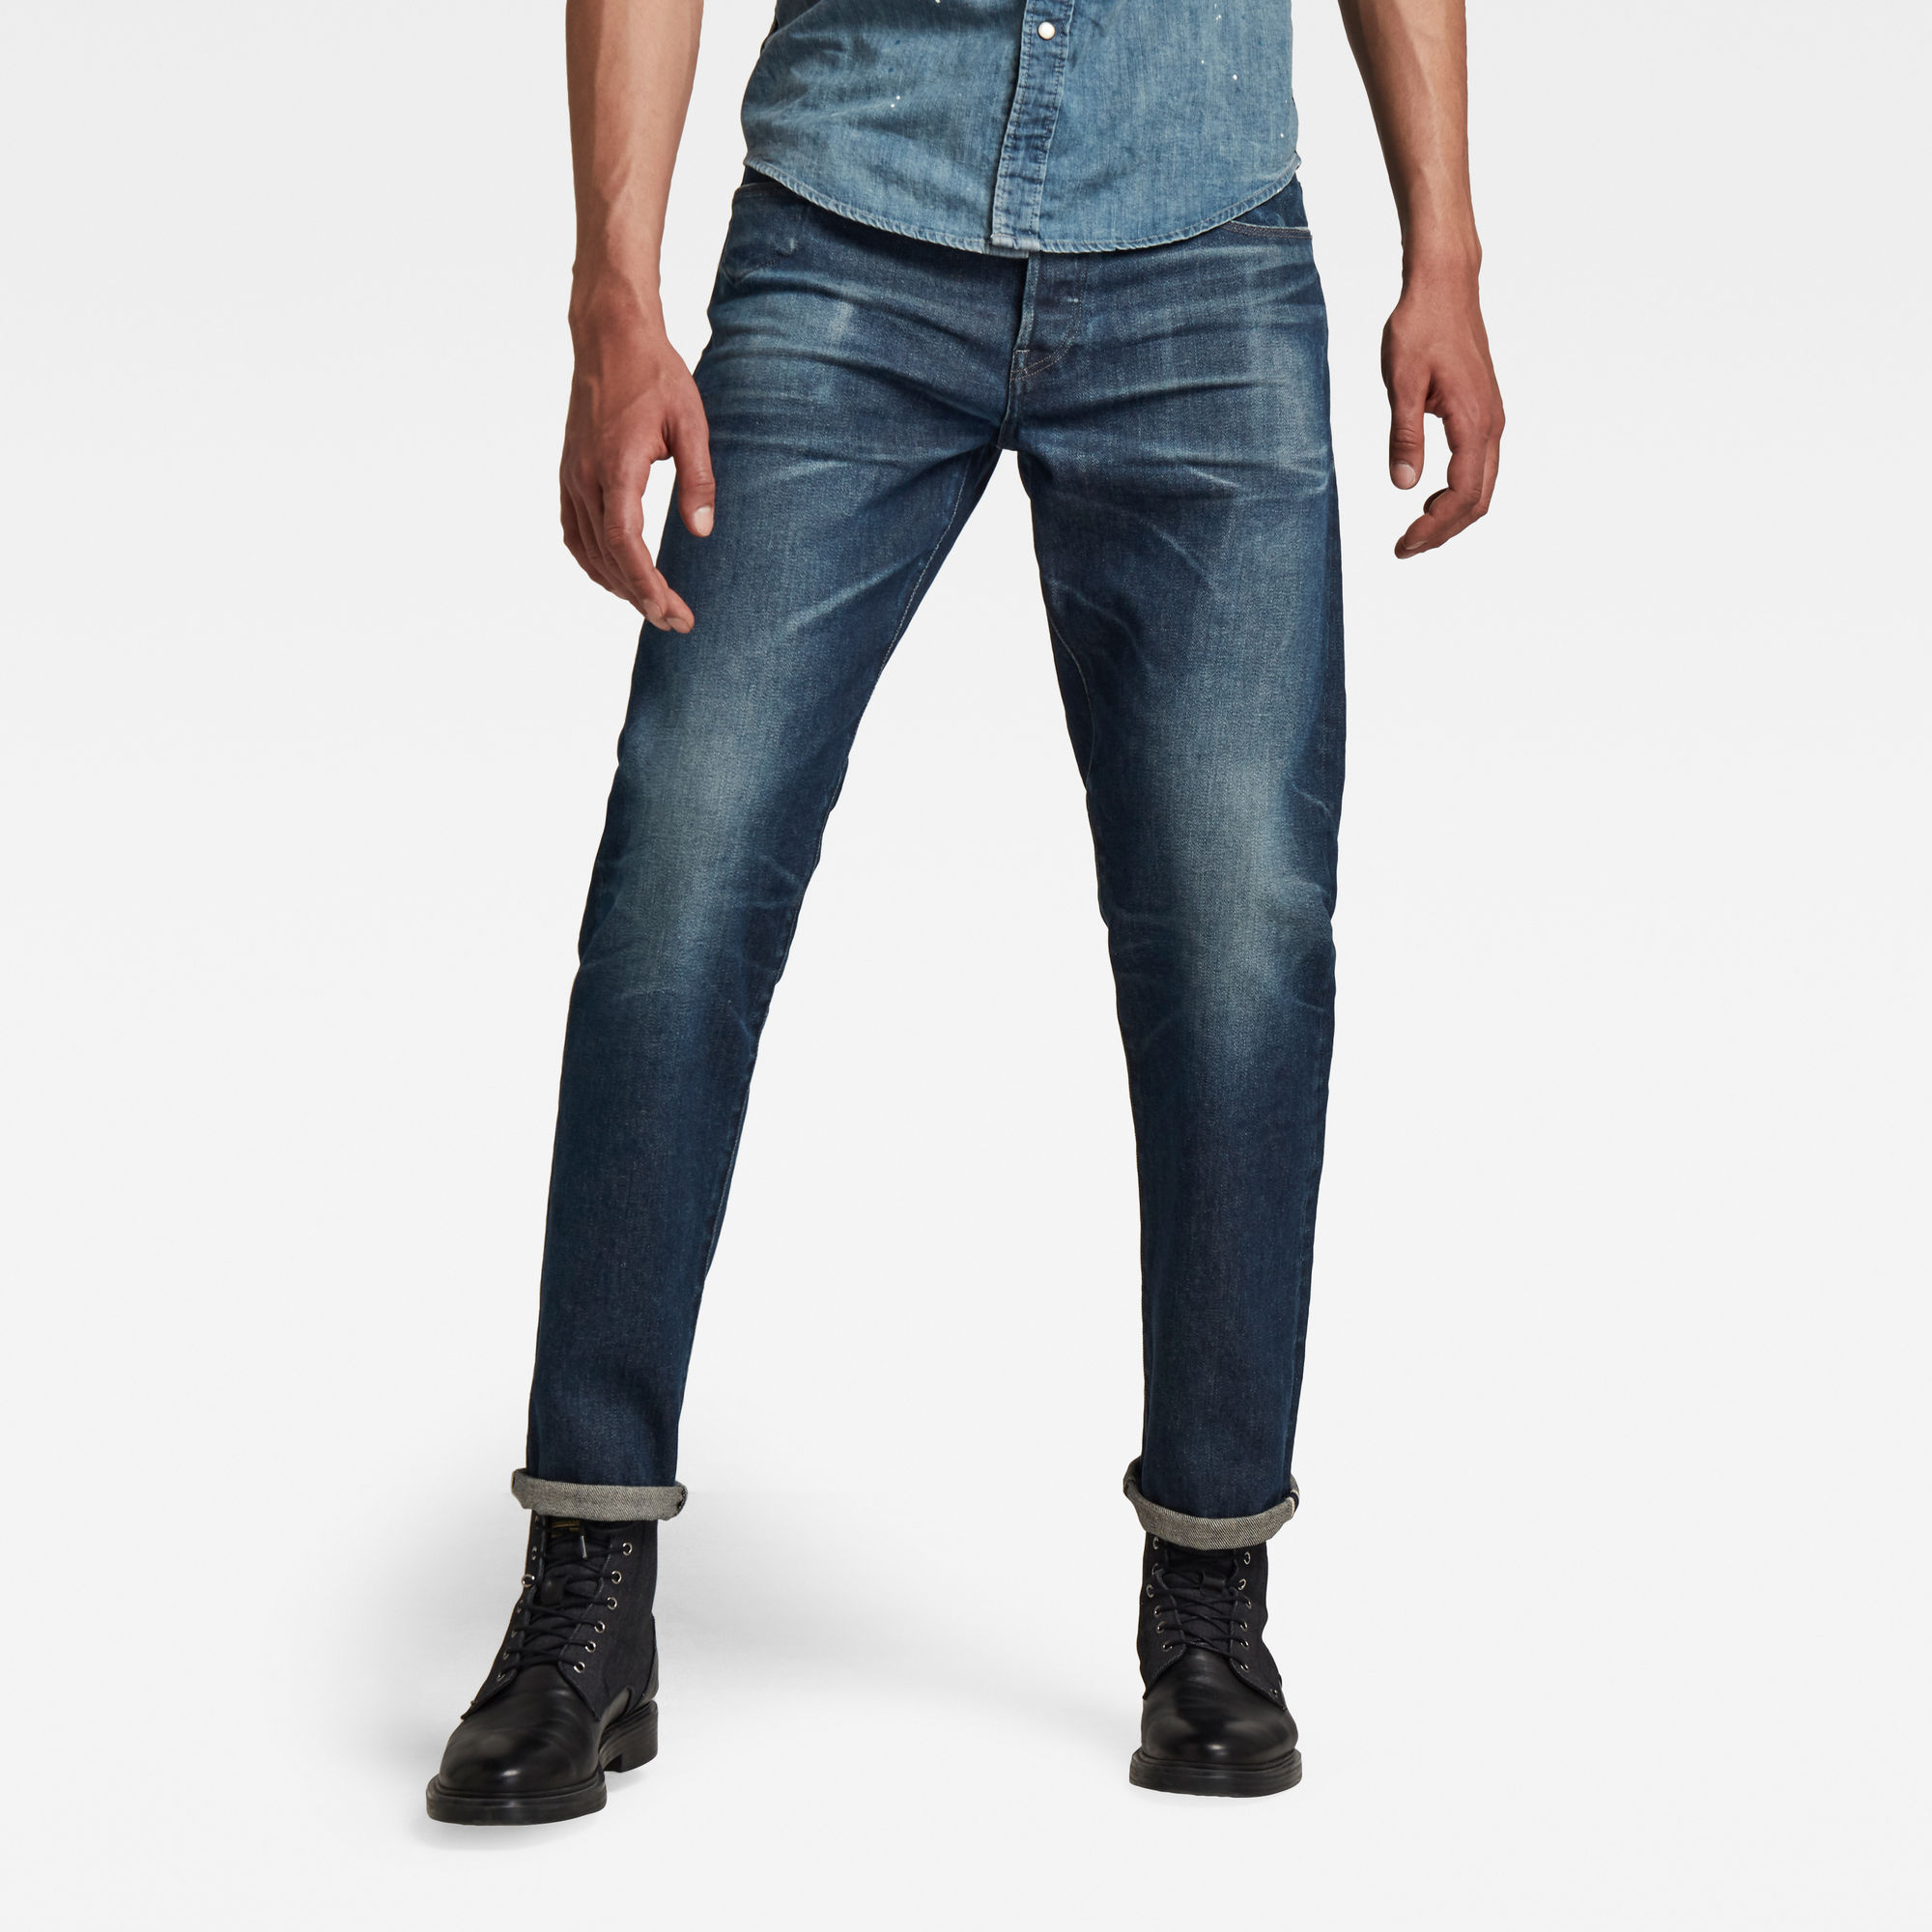 G-Star RAW Heren Morry Relaxed Tapered Selvedge Jeans Donkerblauw